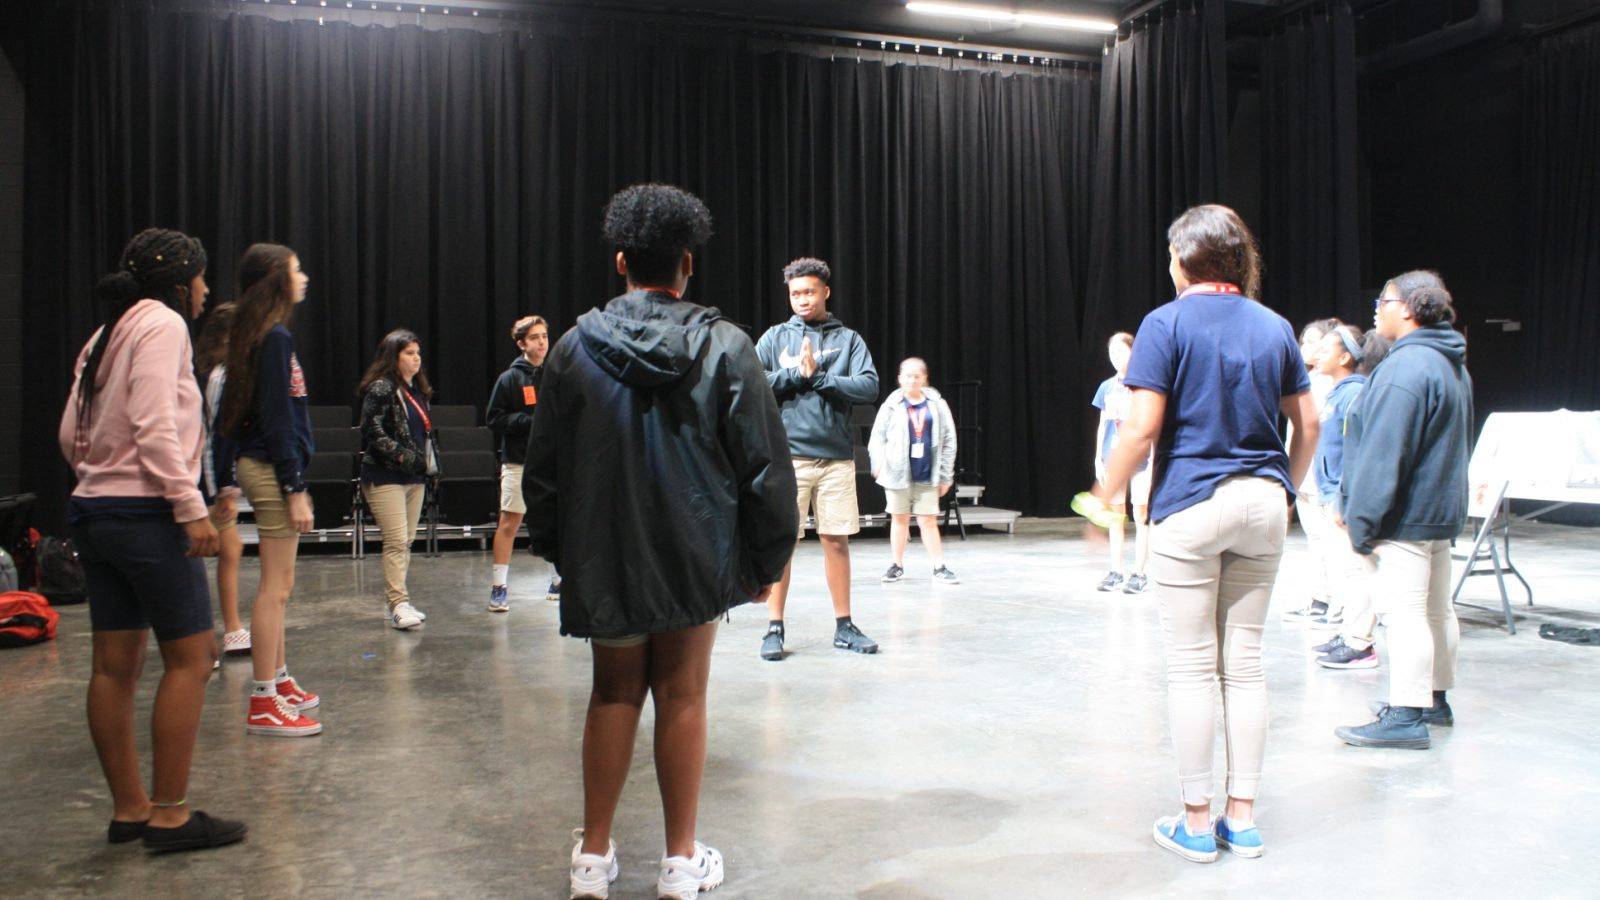 Drama Theater Students on Stage